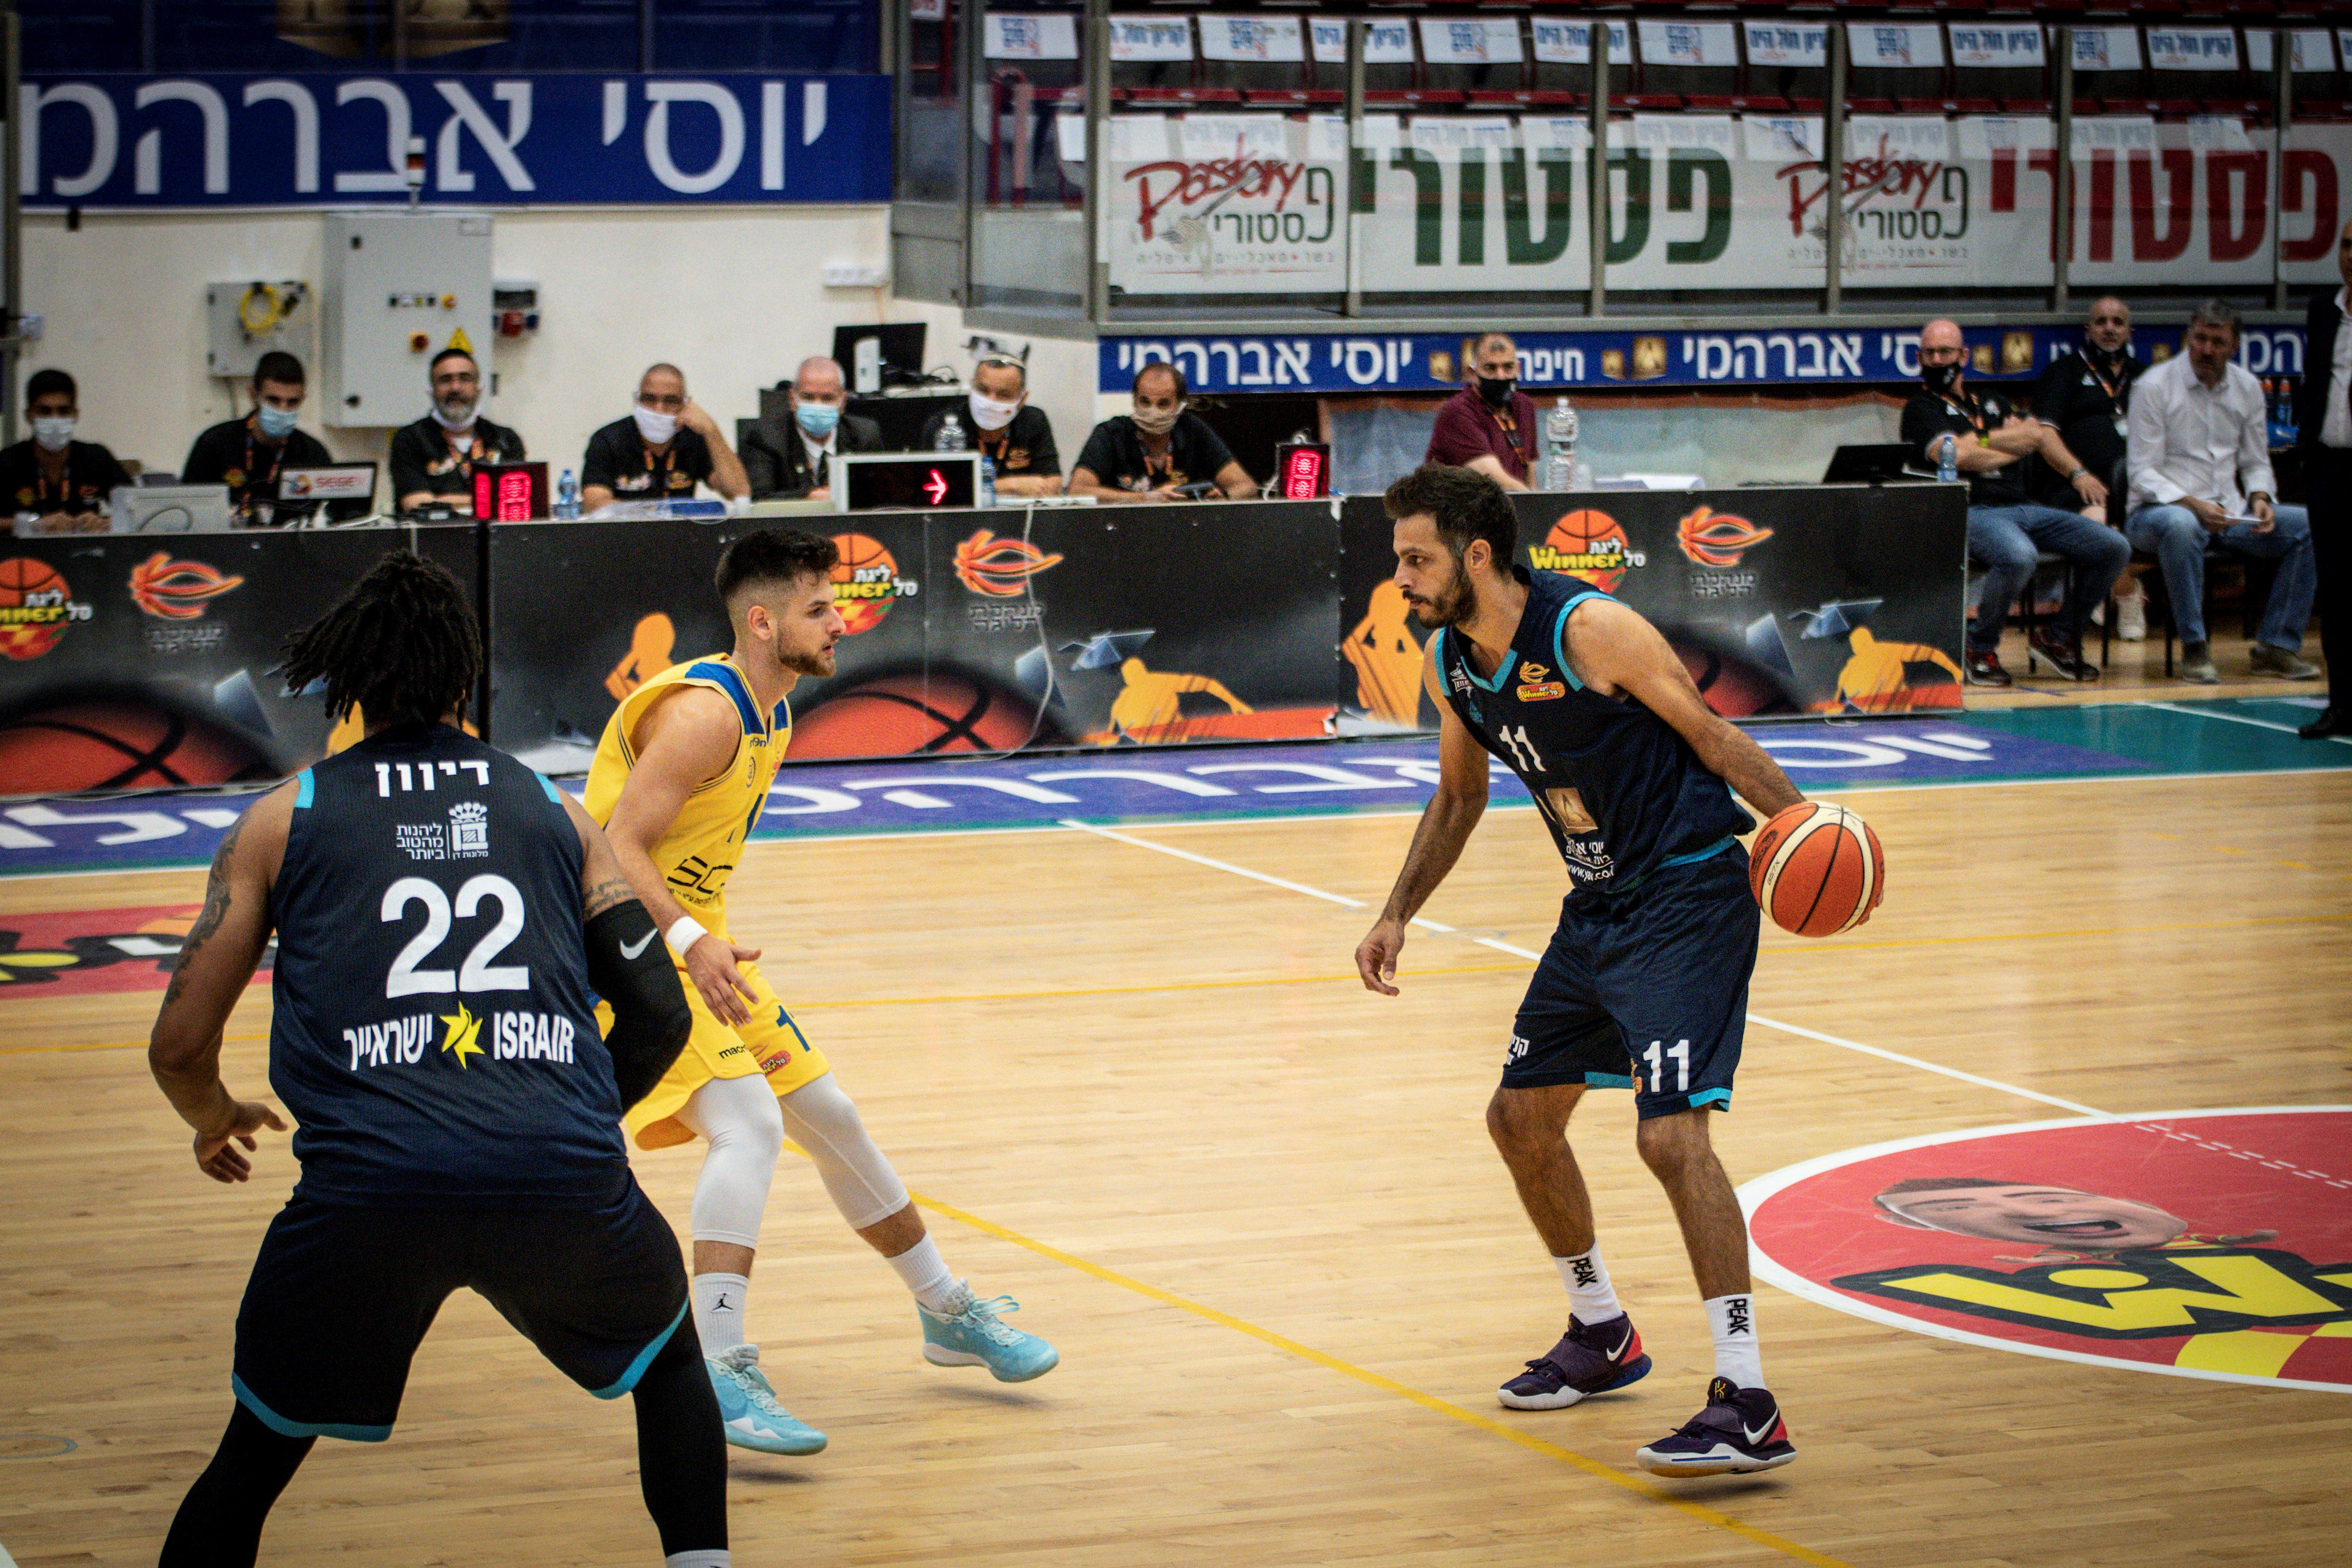 Lower Group, Day 2: Eilat - Ashdod 93:87